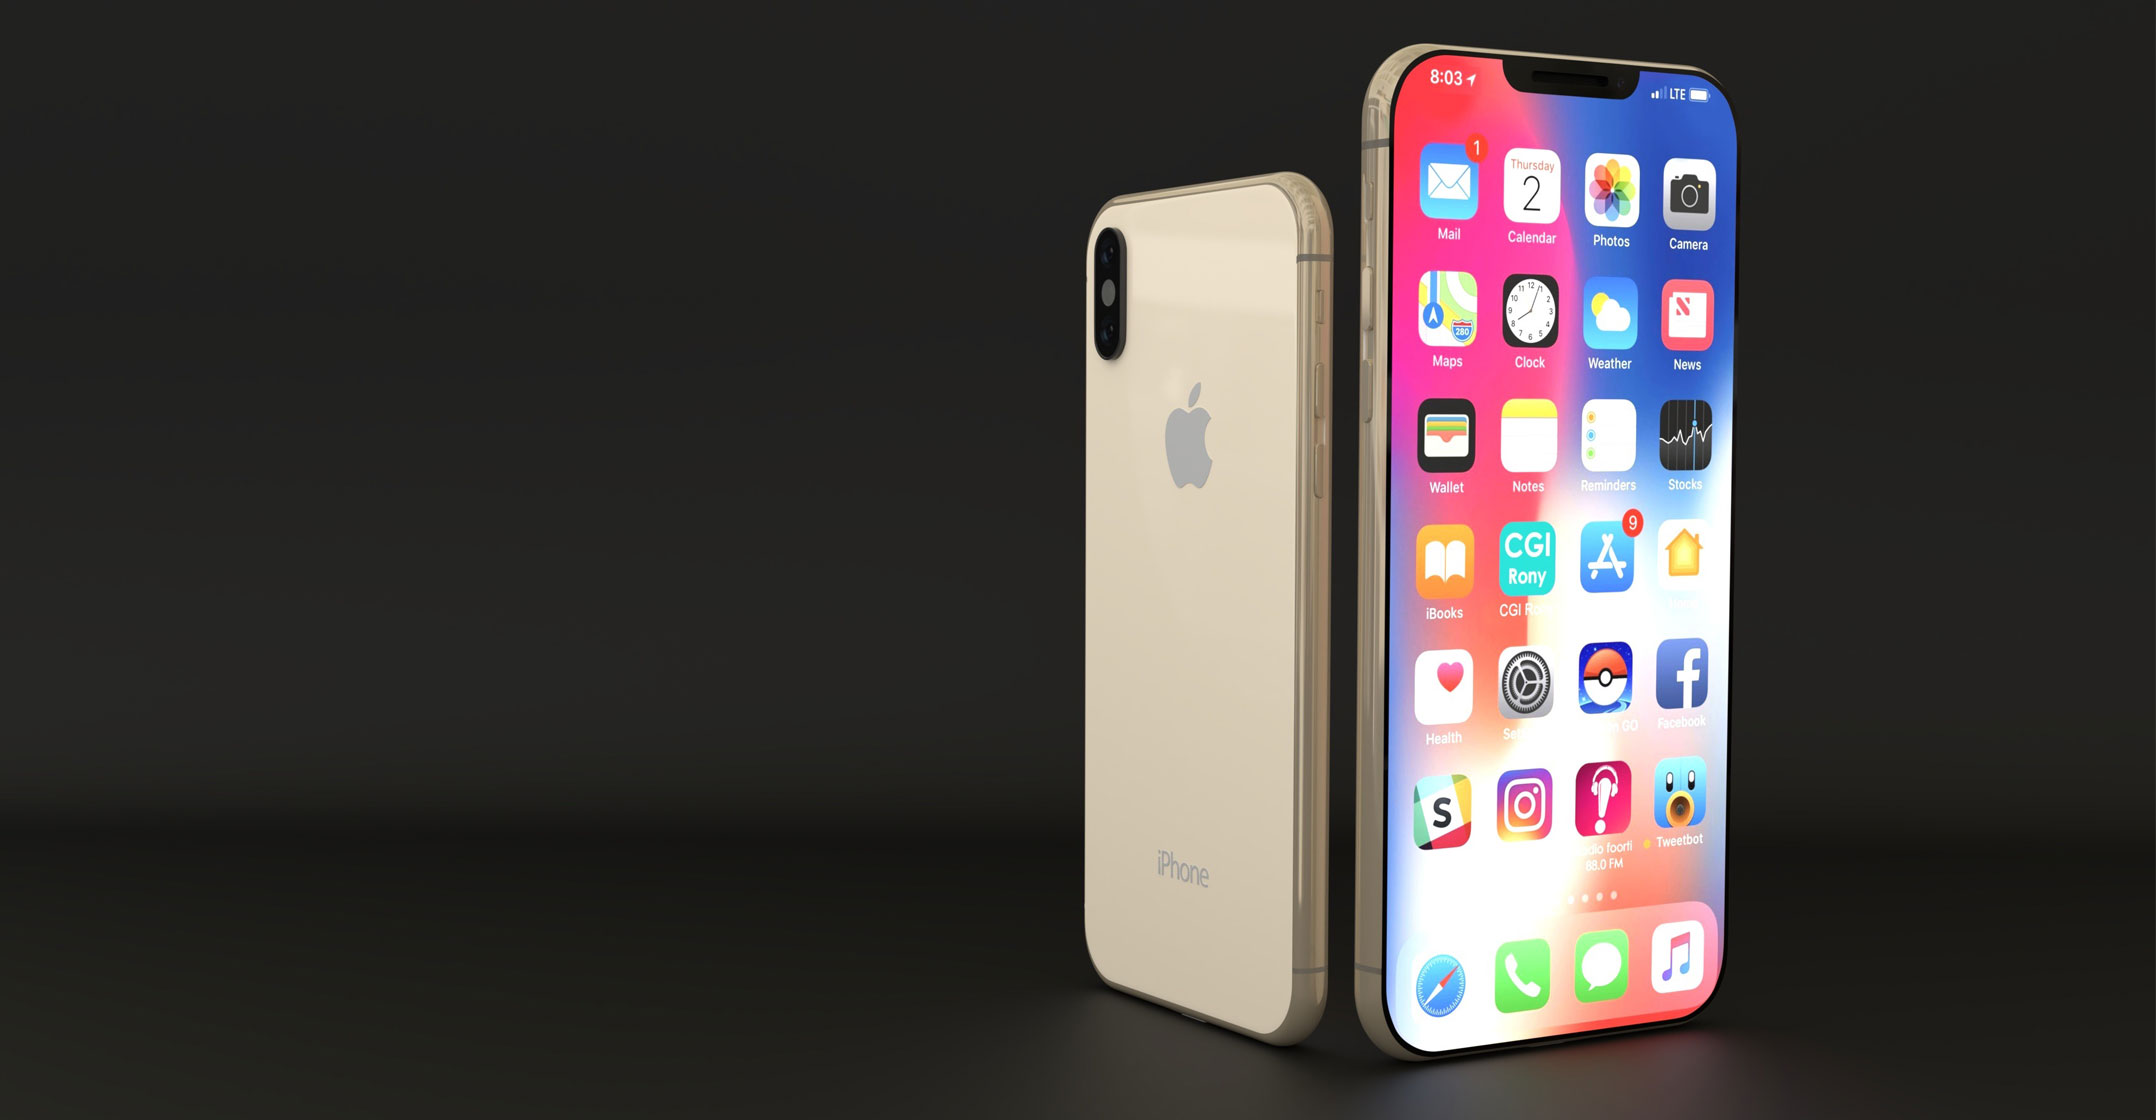 iPhone 11 – here's what's coming from Apple in September 2019